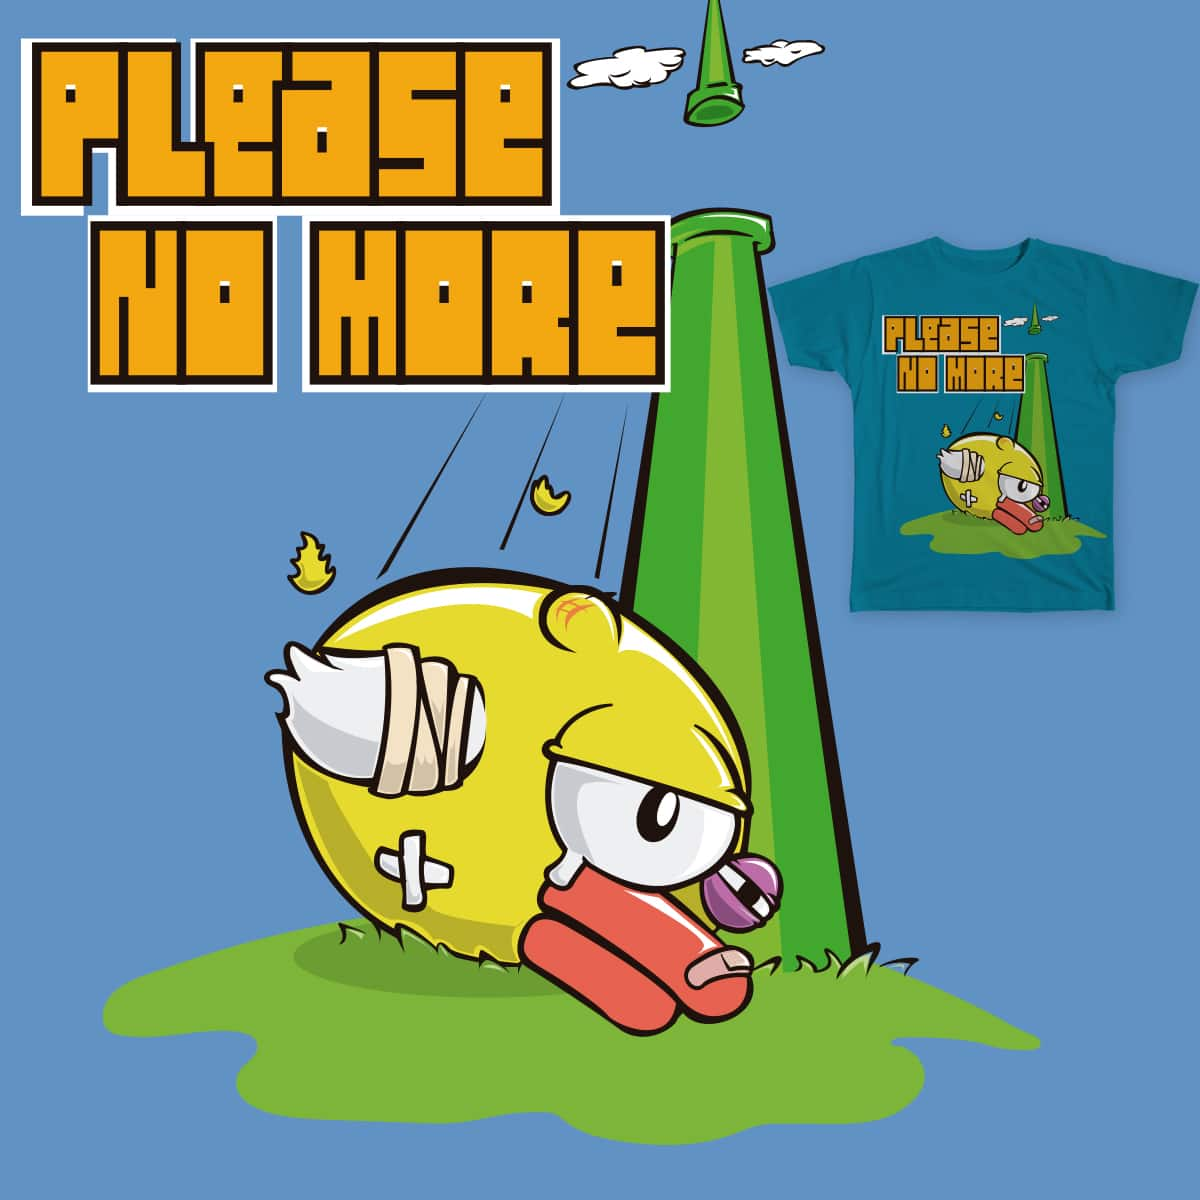 Please, no More by Betowski on Threadless